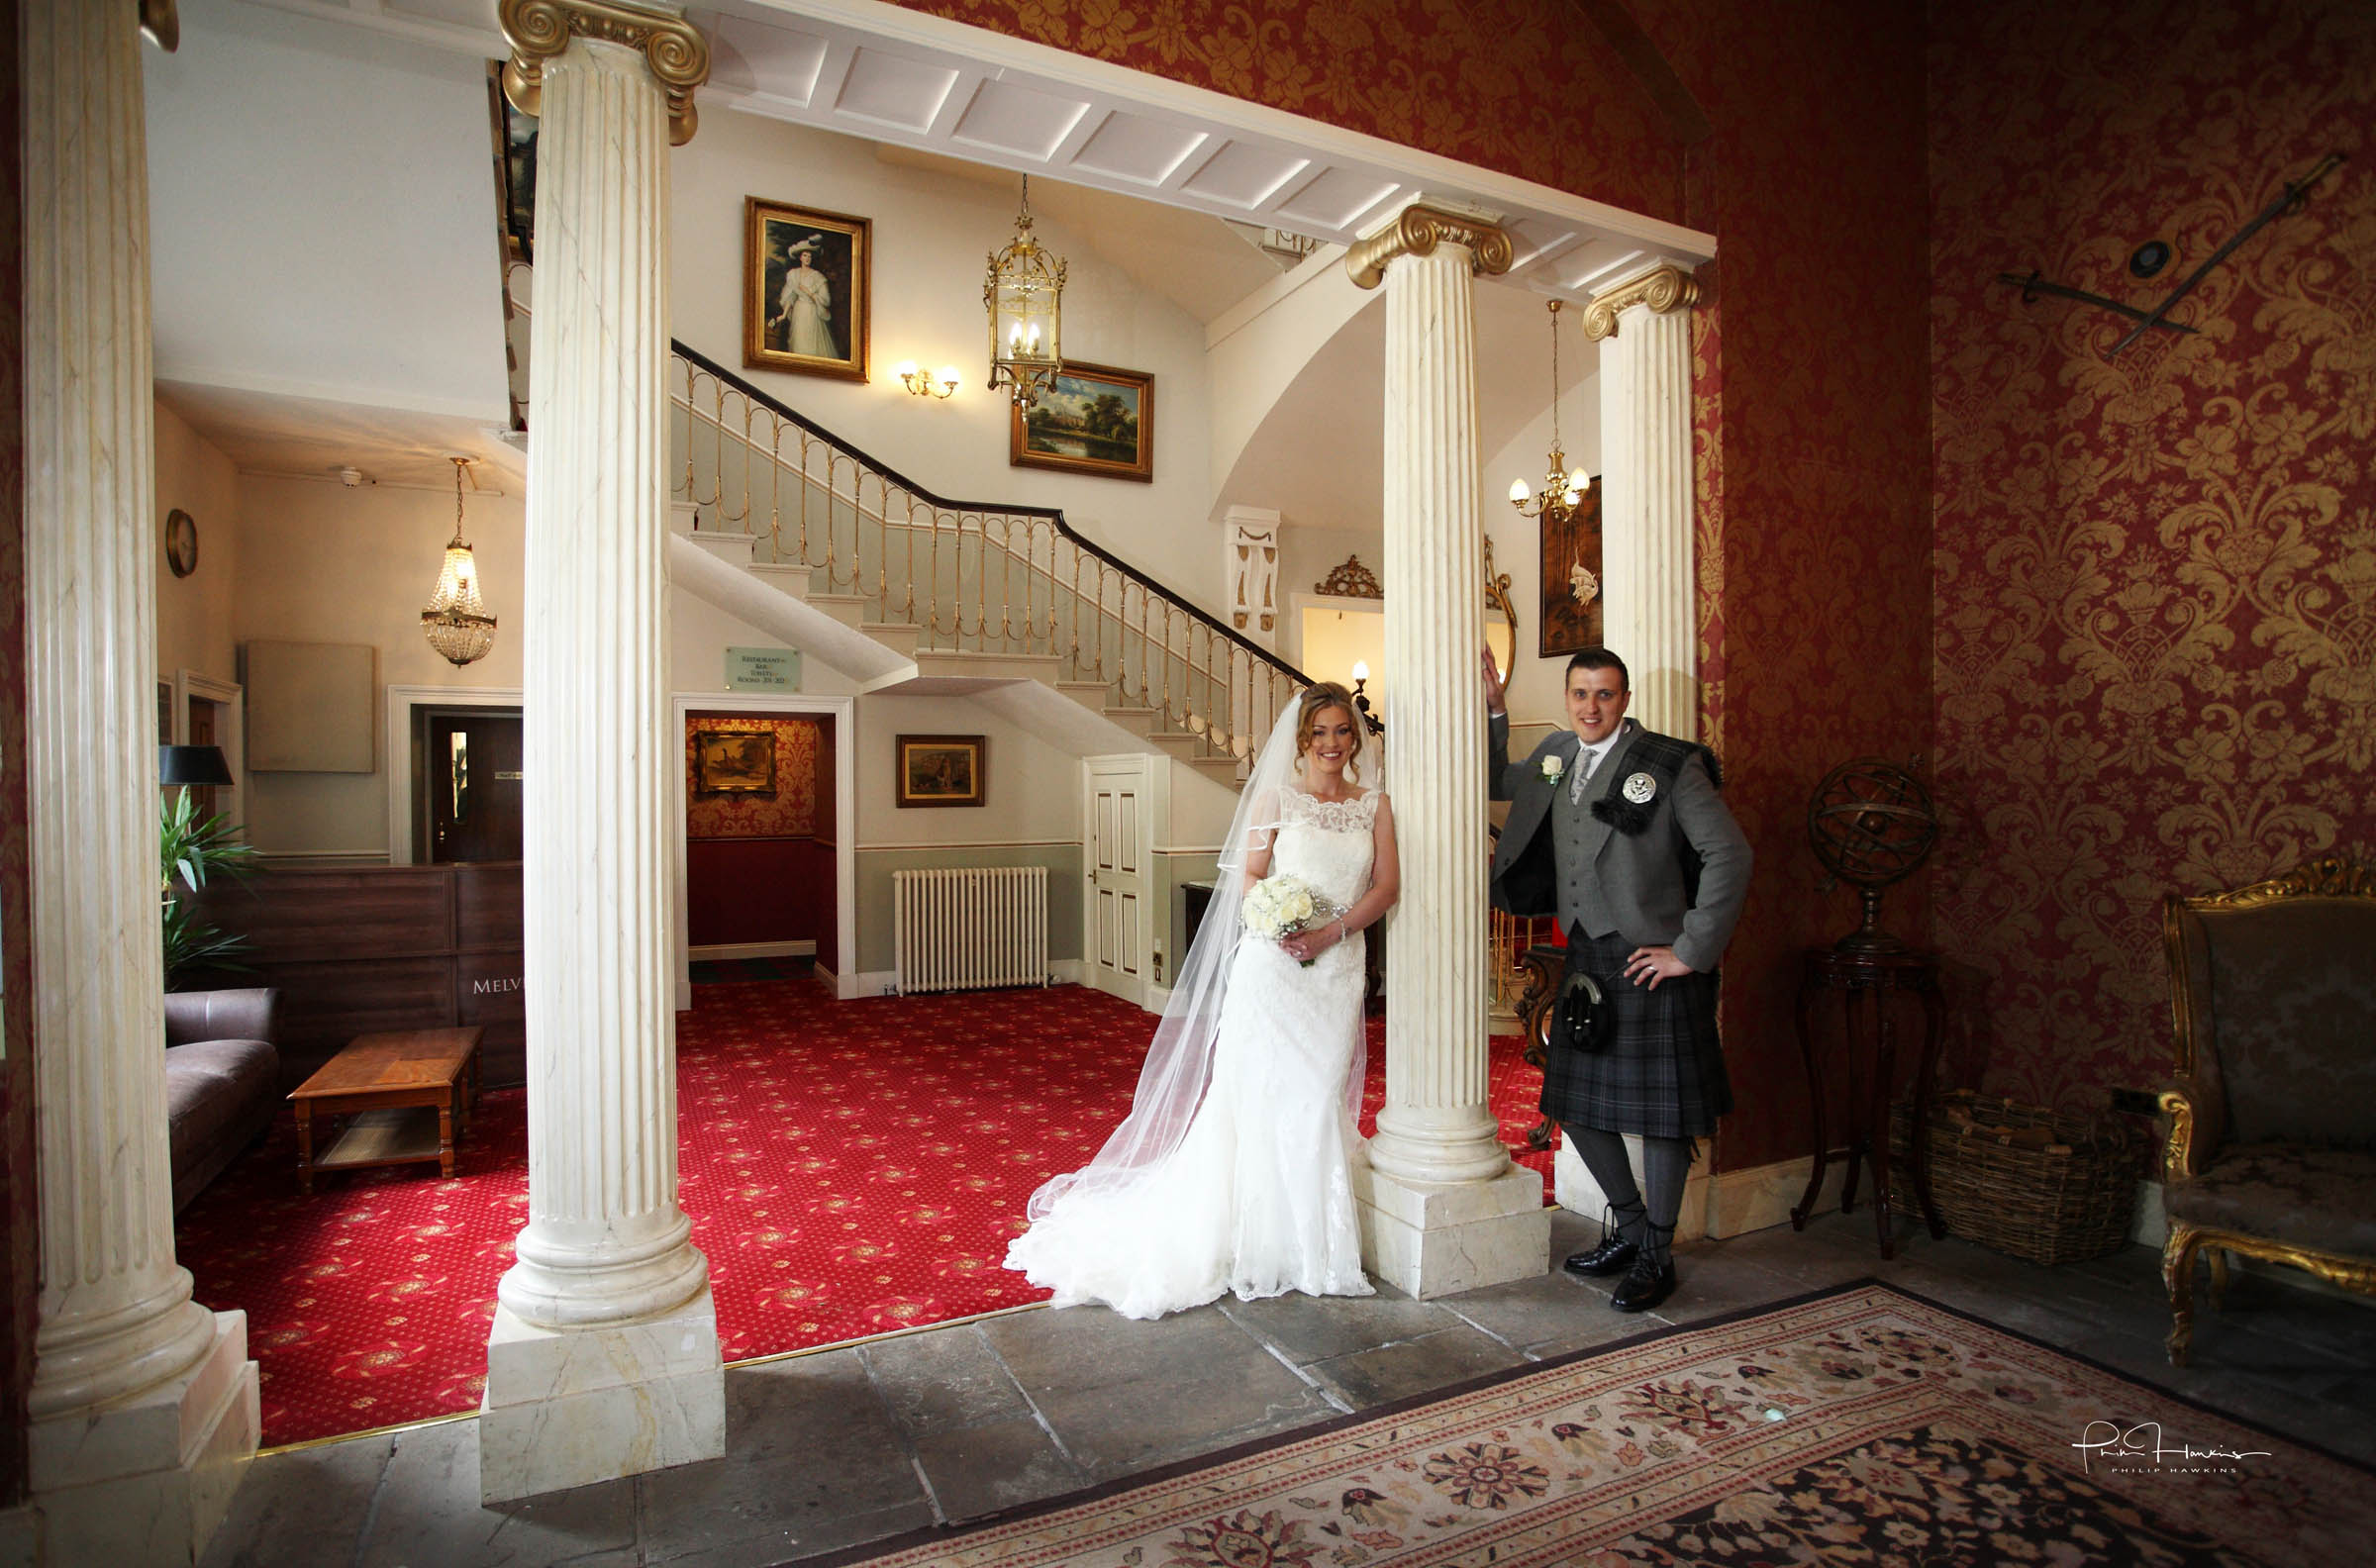 This is one from Mary and Alistair's Bride & Groom shoot at the magnificent Melville Castle. I've been photographing weddings since the age of 16 and just love the buzz of being part of such a special day! Mary posted a fantastic review of my wedding photography this week on the Scottish Wedding Directory.